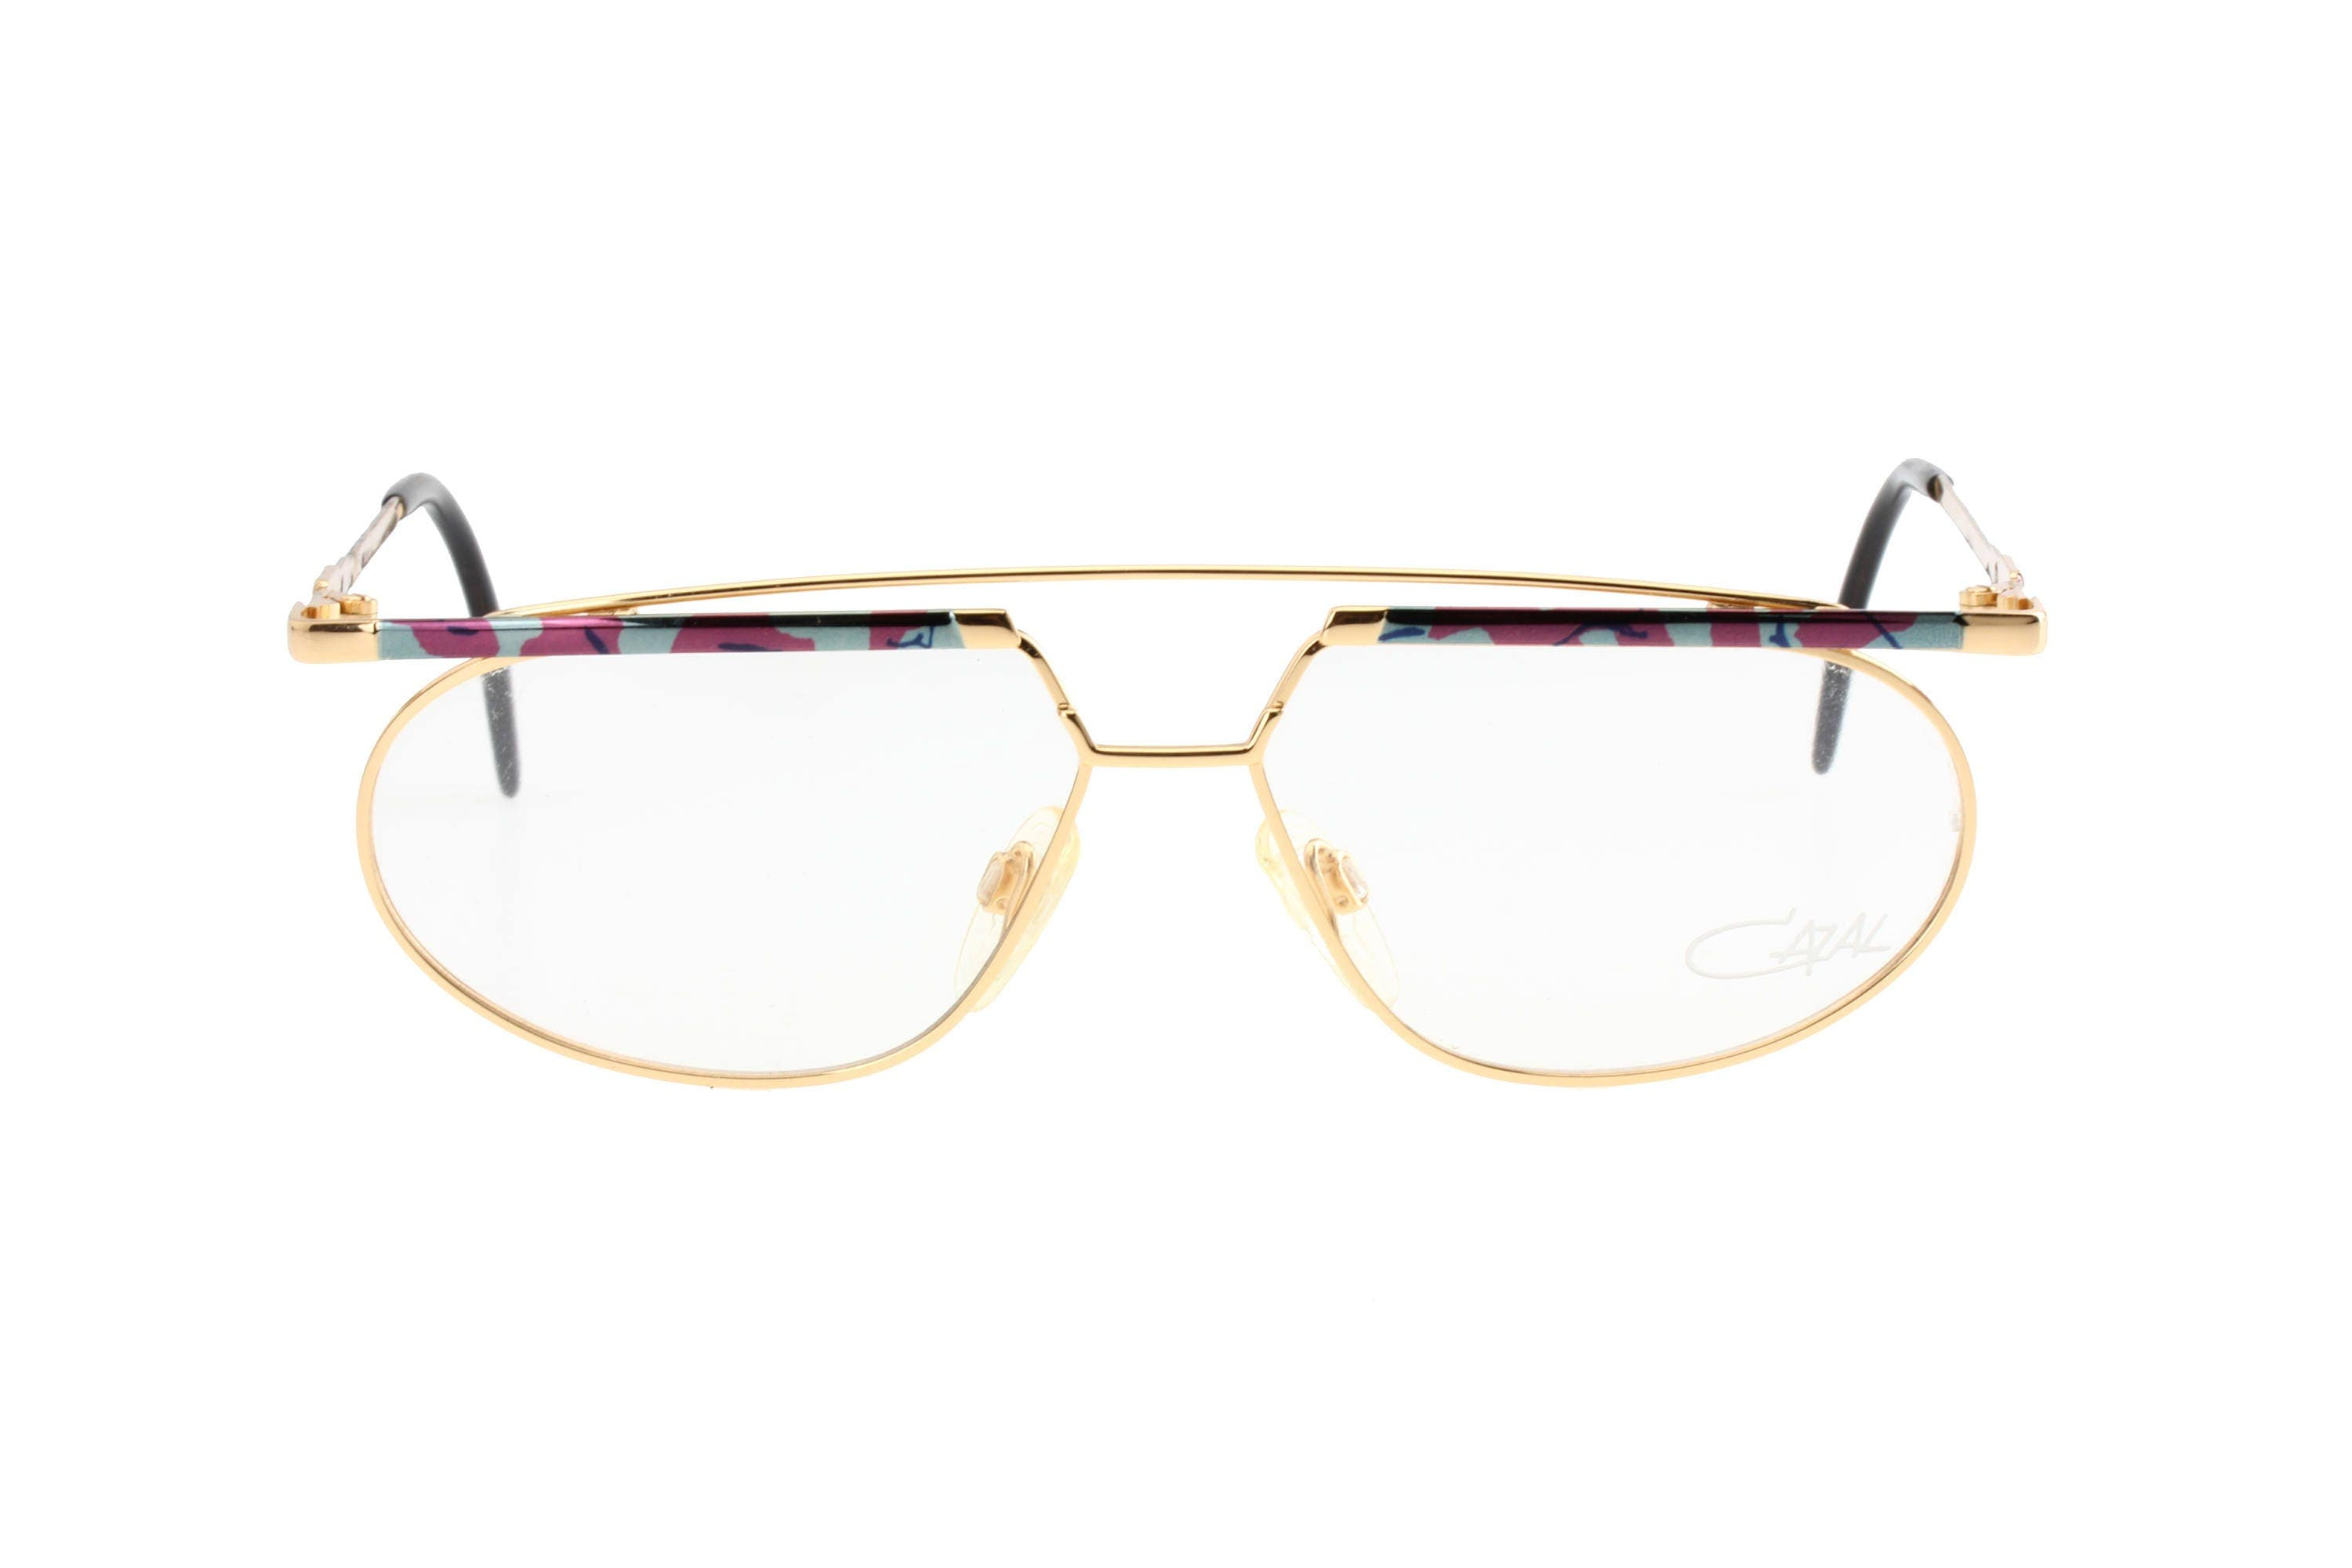 e5614fc20d8 Cazal mod. 254 avant garde double bridge golden metal hip eyeglasses frames  with blue and